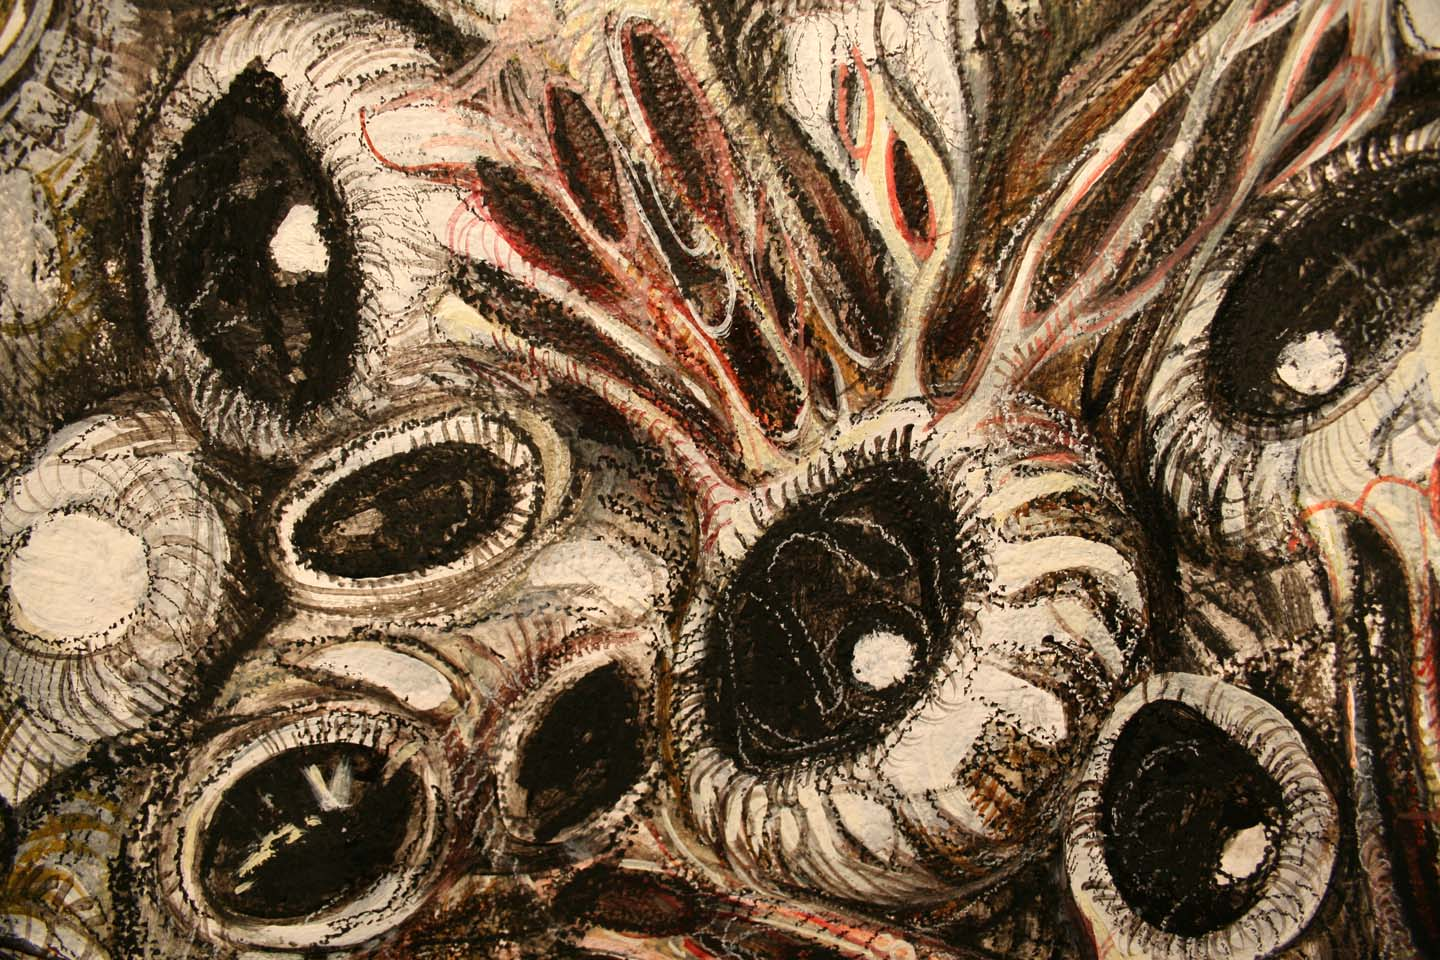 rohini-devasher-copyright-untitled-wall drawing II (detail)- 2008